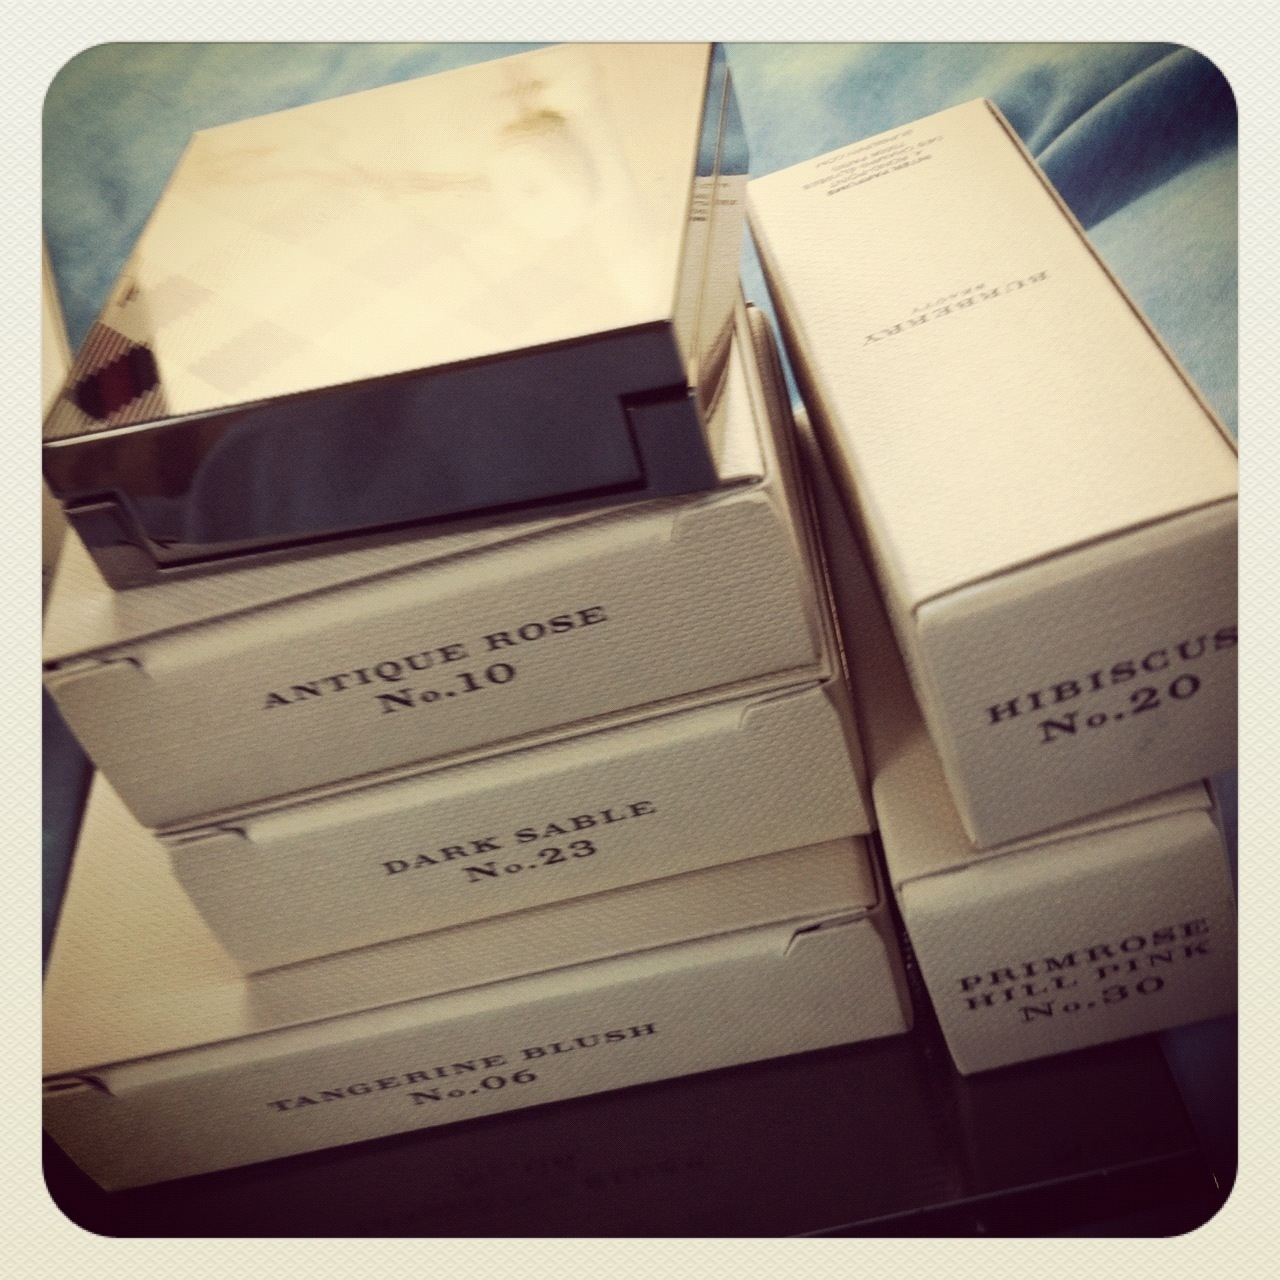 burberry purchases